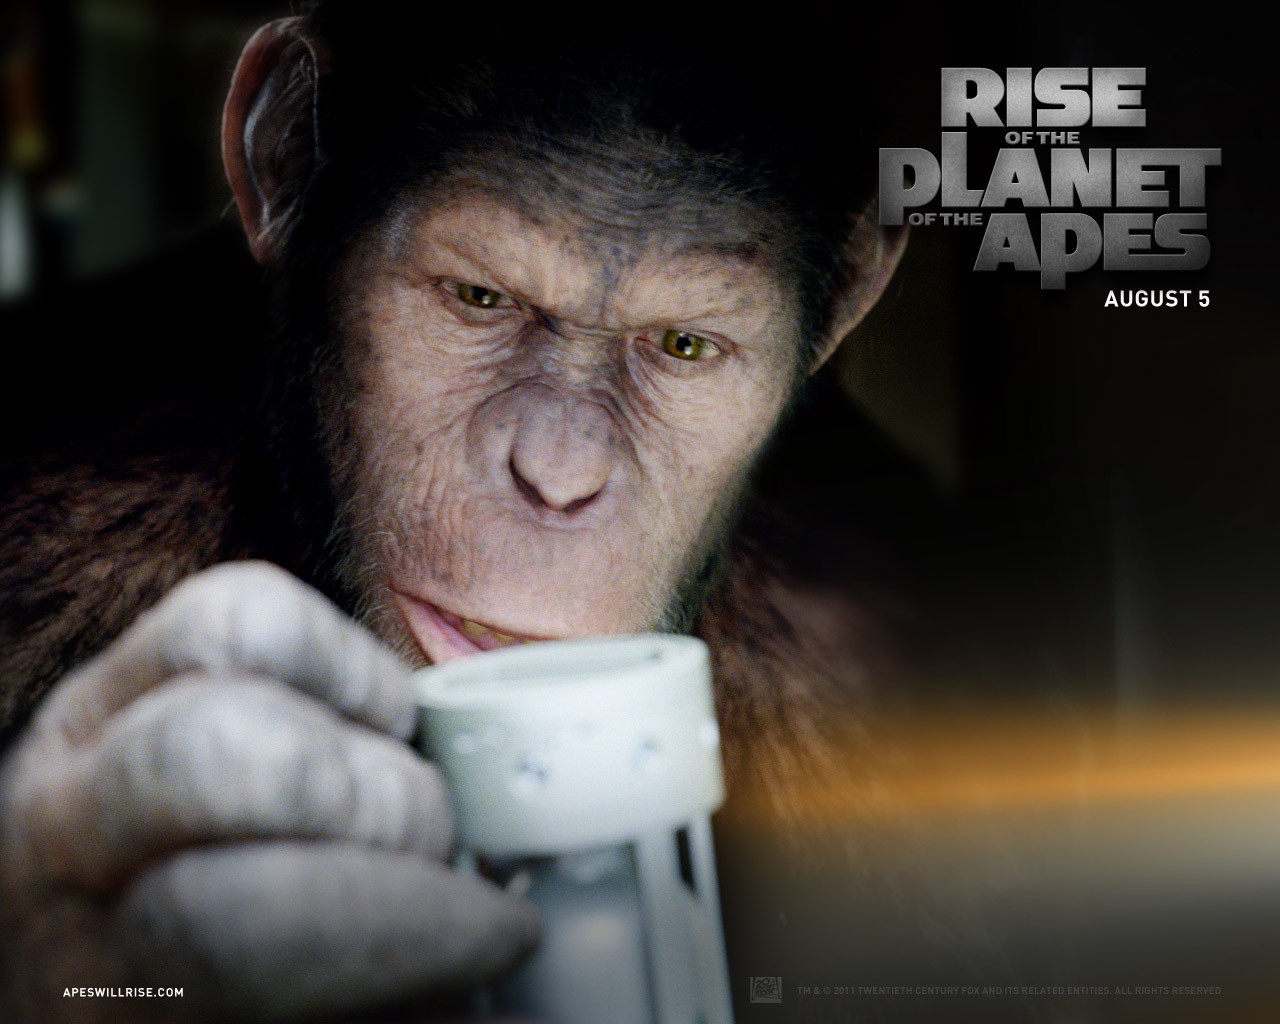 http://4.bp.blogspot.com/-Pp90F6-phNs/TwaYrFaRr-I/AAAAAAAADn8/6yVmtKwIK0k/s1600/Rise-of-the-Planet-of-the-Apes-Wallpaper-06.jpg